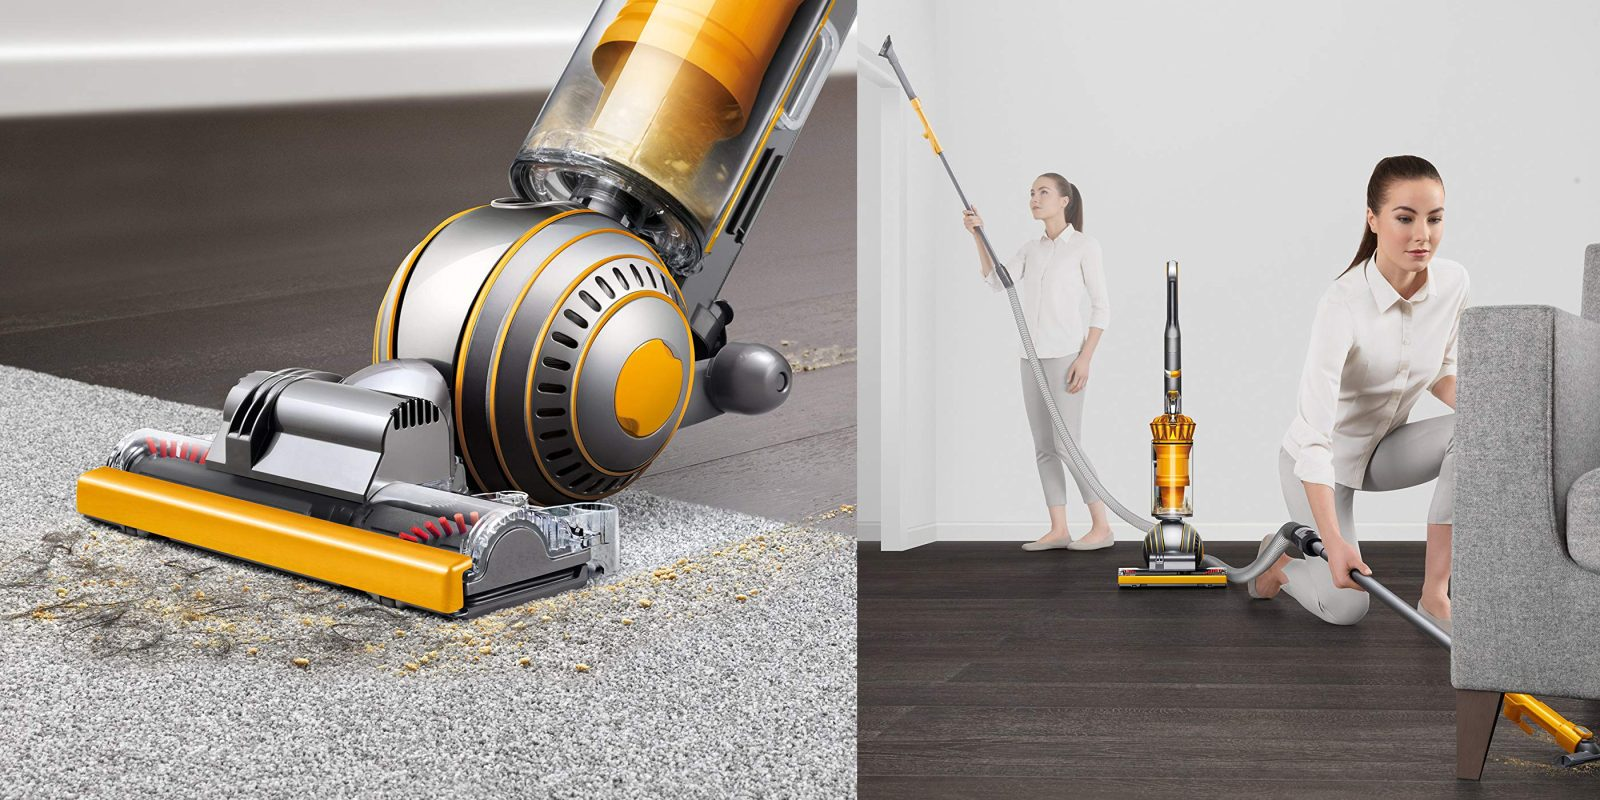 Save big on a Dyson Ball vacuum at Amazon, cert. refurb $175 (Orig. $400)